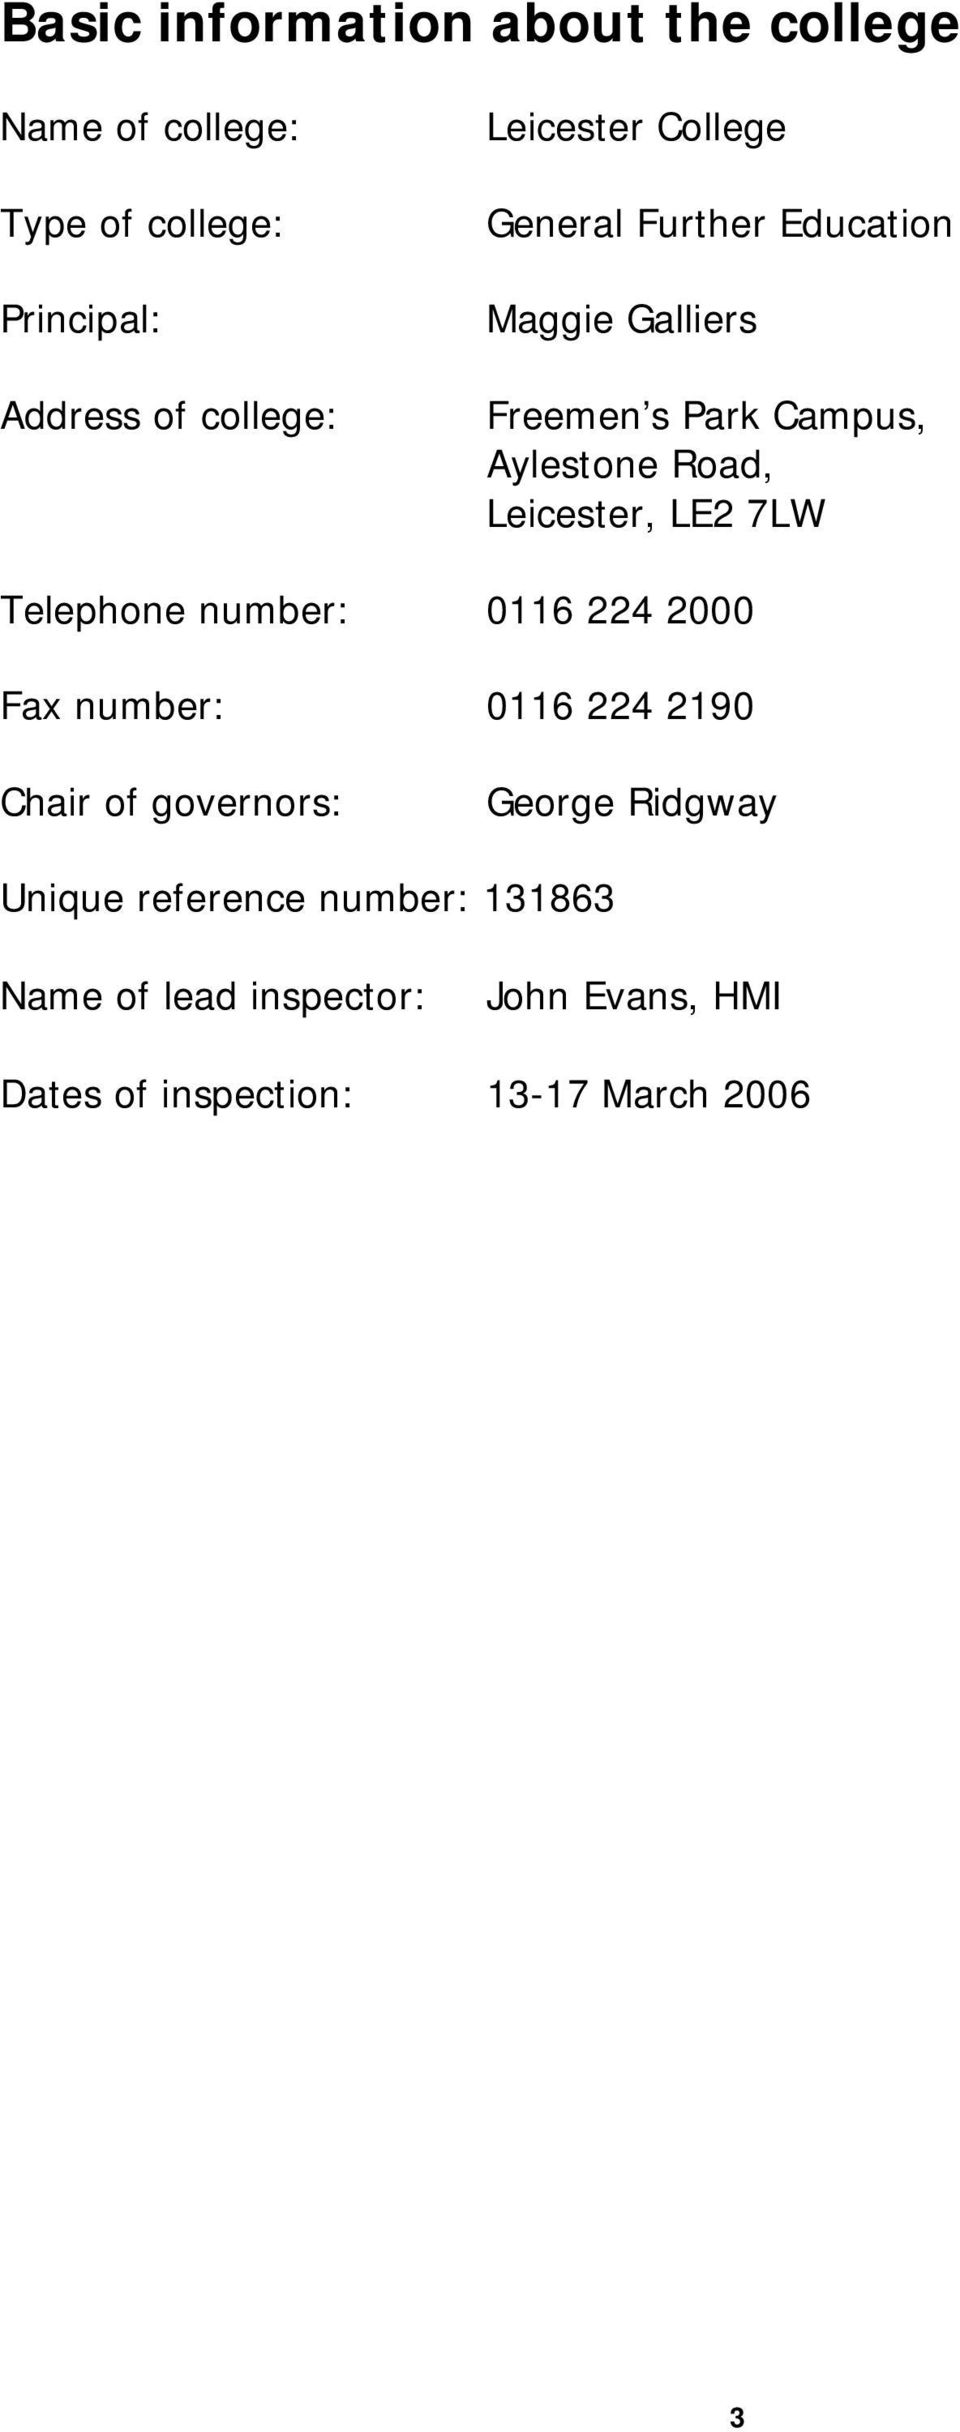 Telephone number: 0116 224 2000 Fax number: 0116 224 2190 Chair of governors: George Ridgway Unique